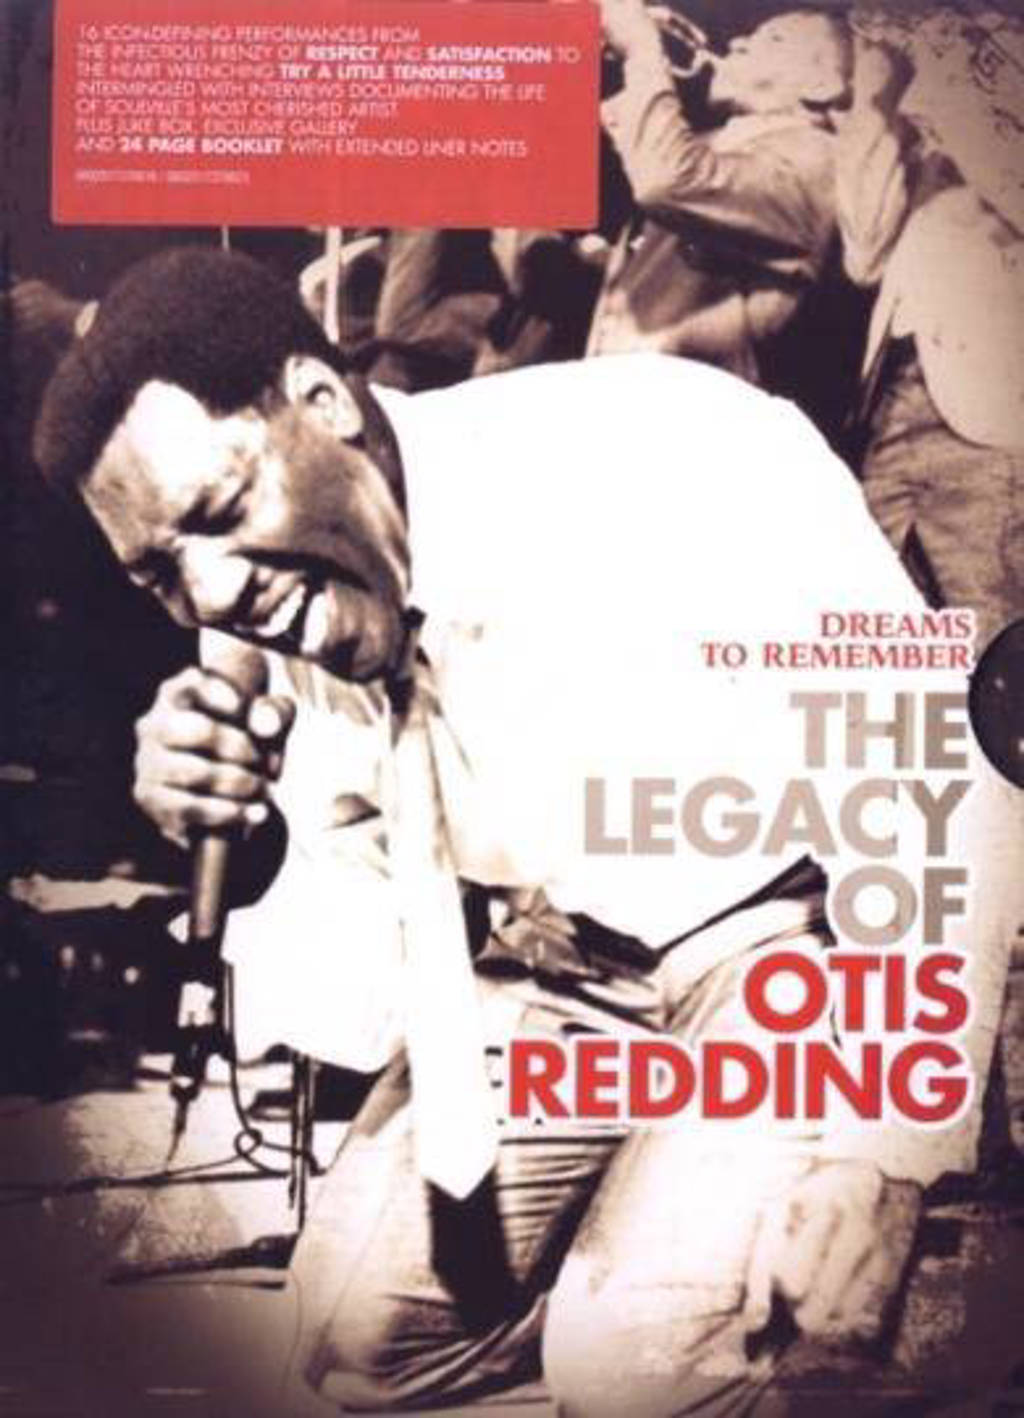 Otis Redding - Dreams to remember the legacy of (DVD)